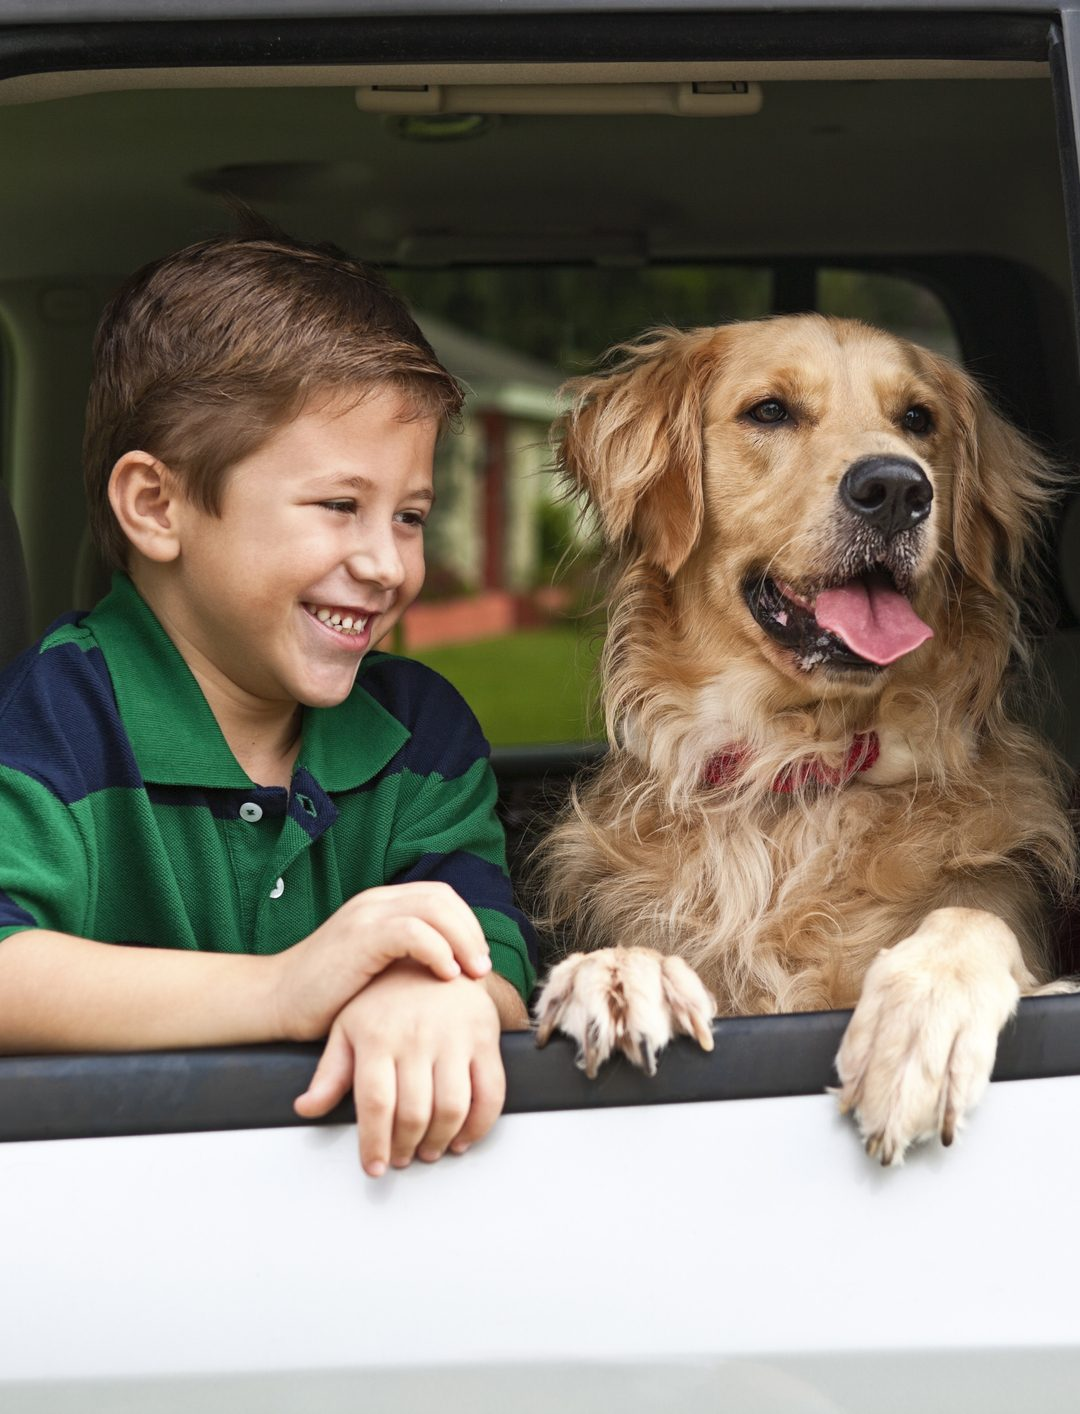 The Best Tips for Introducing a Dog to Your Children and Family